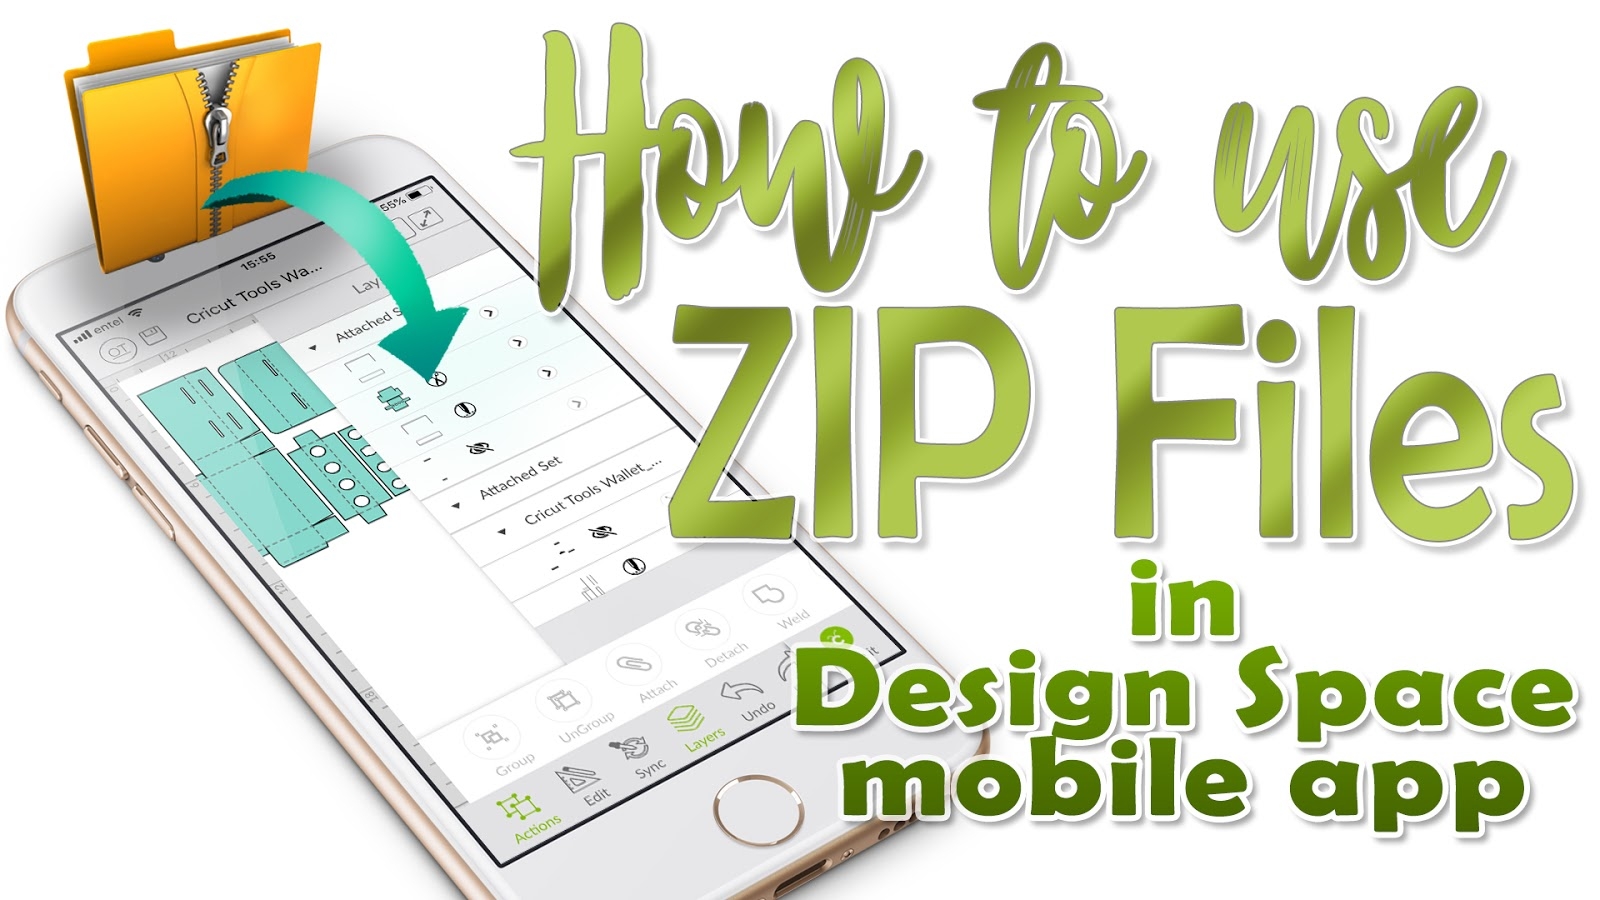 Awesome SVGs: Using ZIP Files with Design Space Mobile App